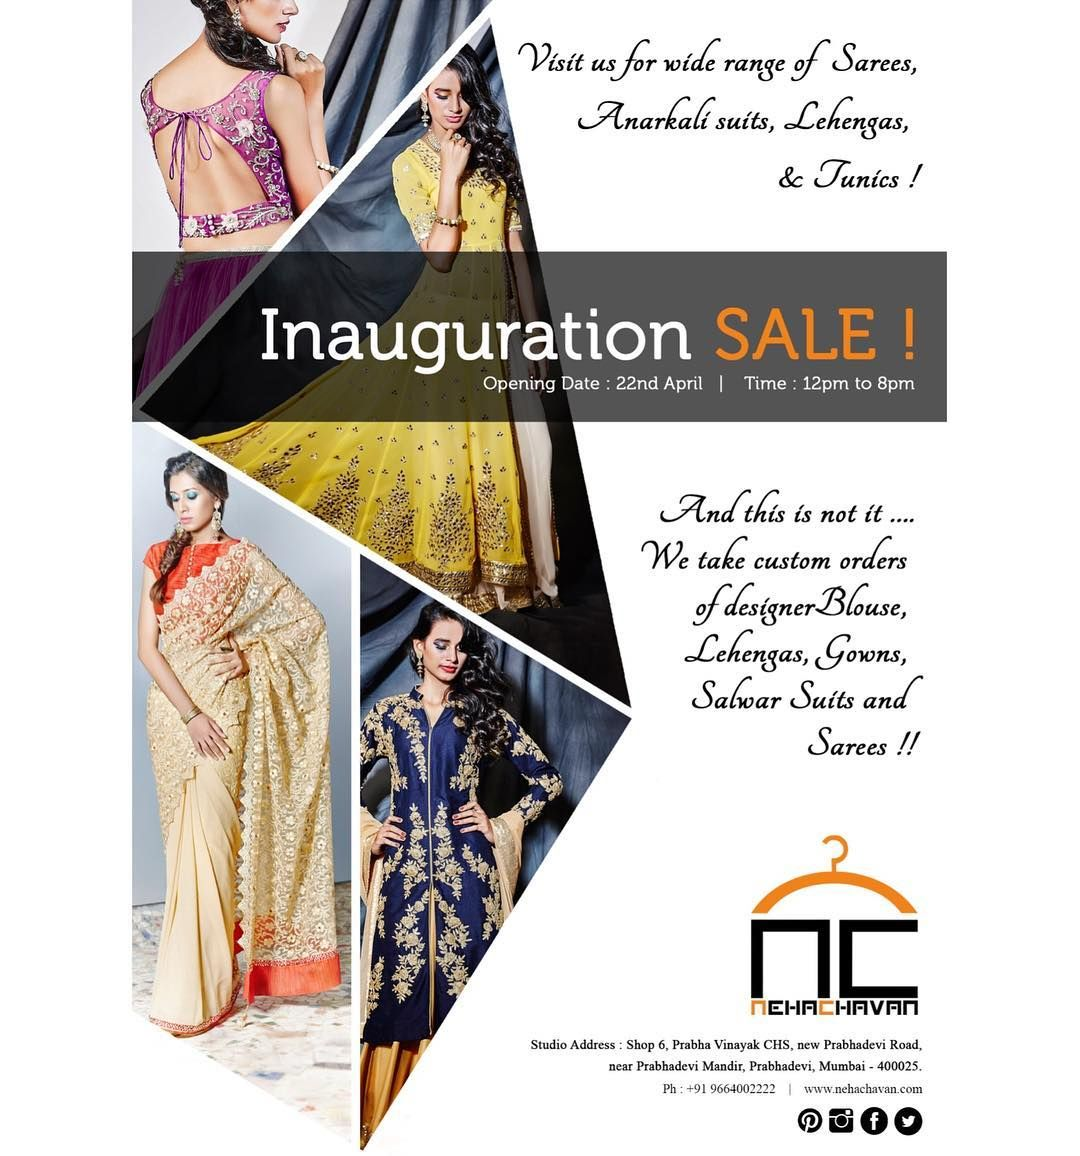 We bet you cannot miss this one! Flat 15% off on all Tunics Kurtas Anarkalis Gowns and Lehengas ! Come over this weekend to grab the best for yourself! Saturday : 1pm to 8pm Sunday: 11am to 8pm #NC #NehaChavan #fashion #designerwear #designer #designstudio #storelaunch #newstore #inauguration #SALE #fashionatyourdoorstep #walkinwardrobe #festivewear #bridalwear #tunics #anarkalisuit #lehengacholi #gowns #indianwear #instapic #instalove #picoftheday #shoptillyoudrop